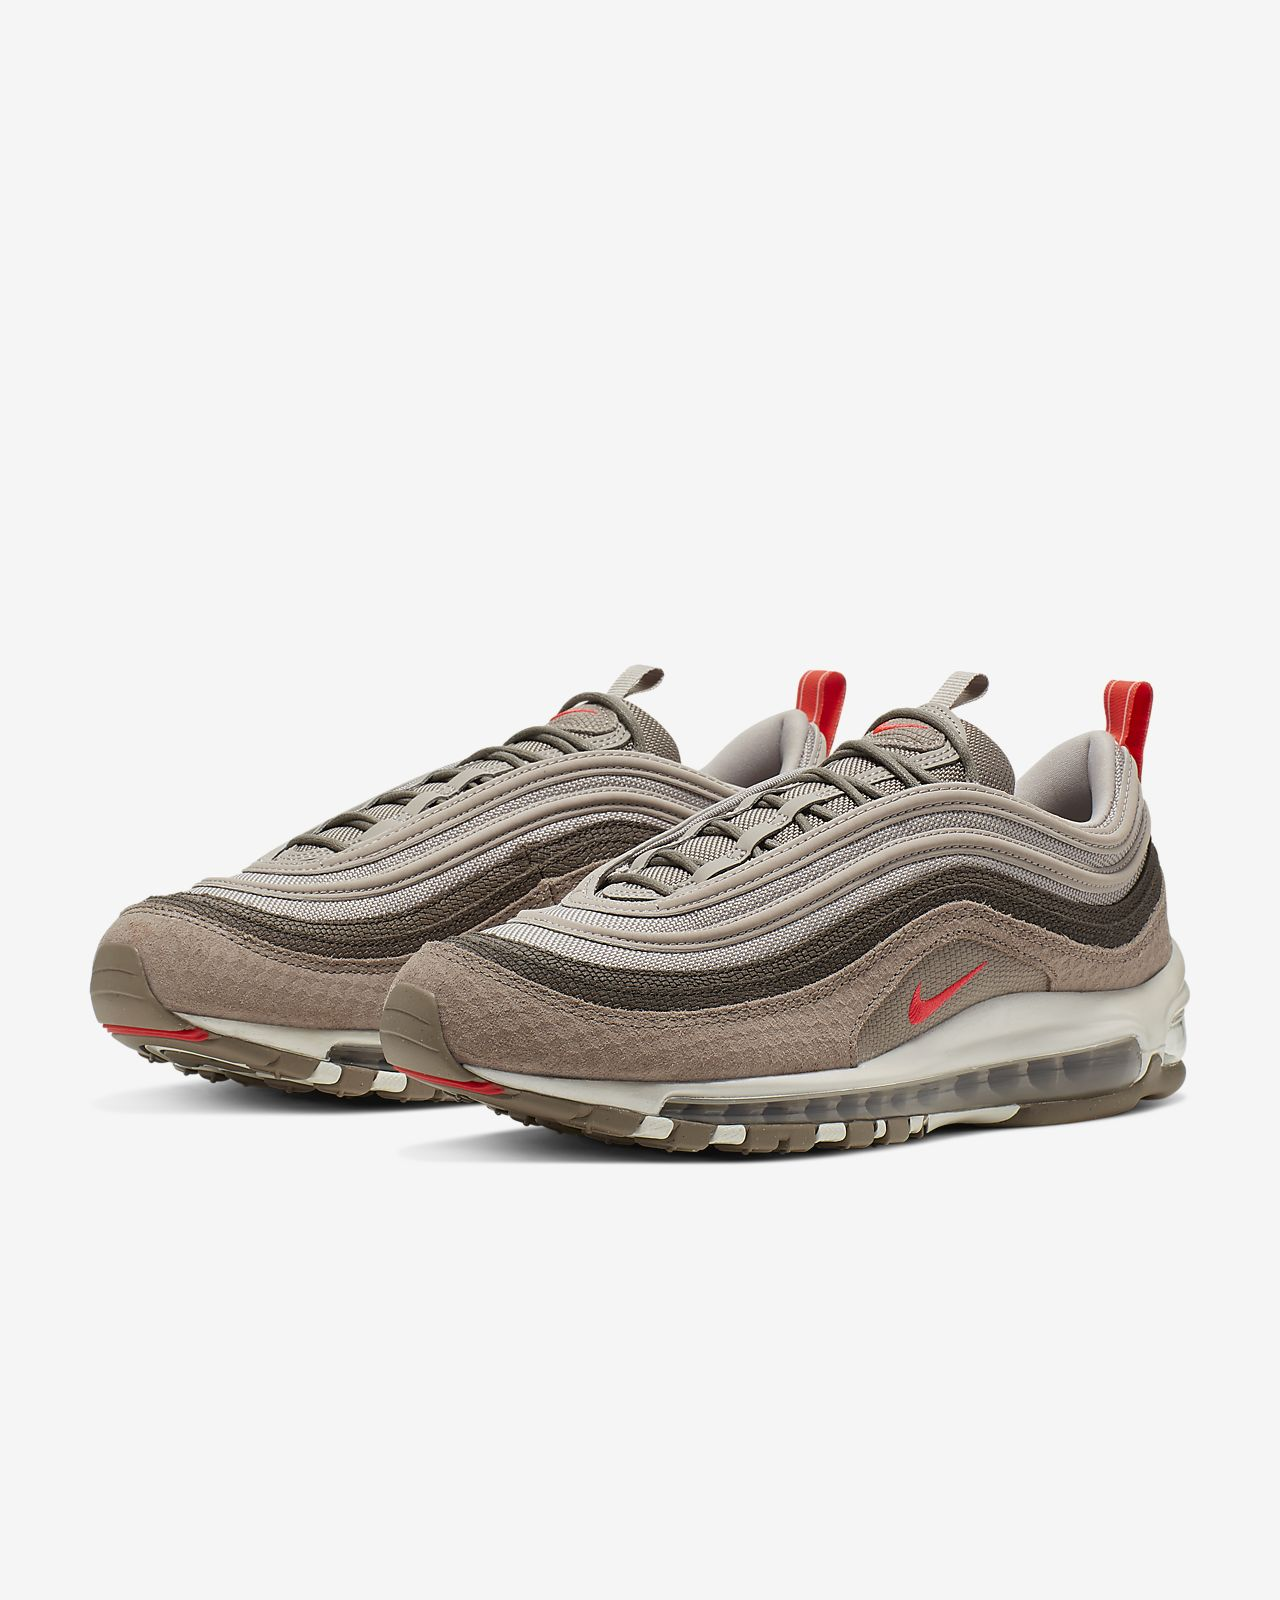 official photos 778f9 034d2 ... Nike Air Max 97 Premium Men s Shoe